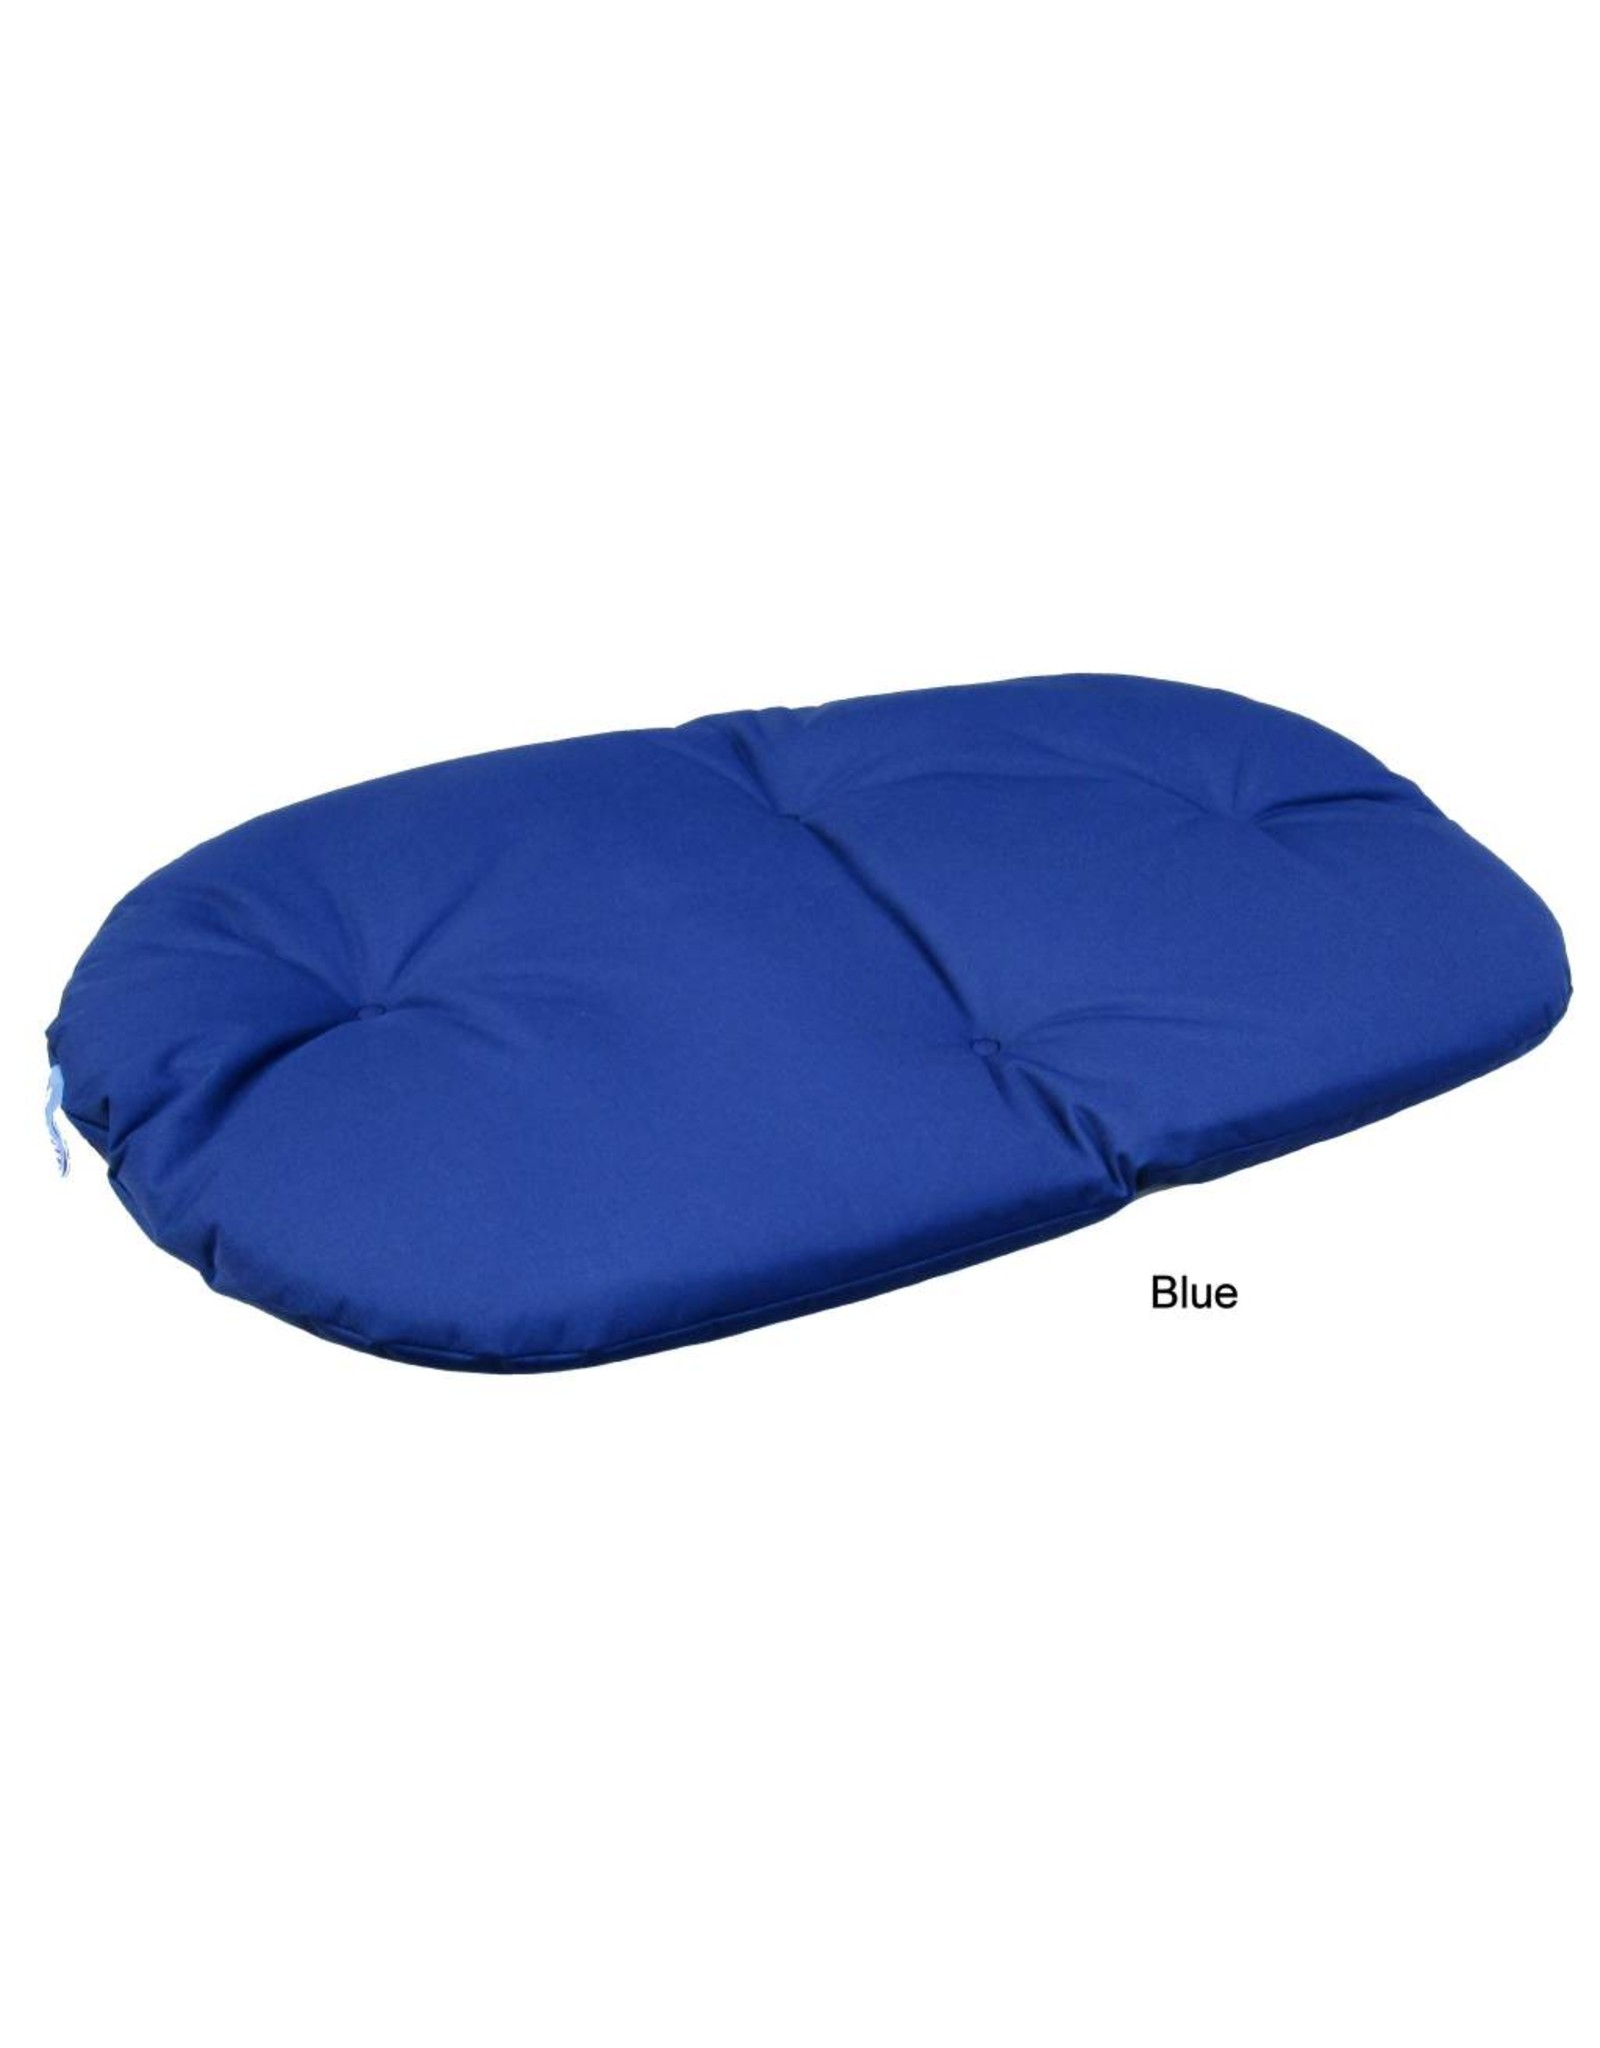 Pets & Leisure Country Dog Heavy Duty Oval Waterproof Cushion Pad in Blue